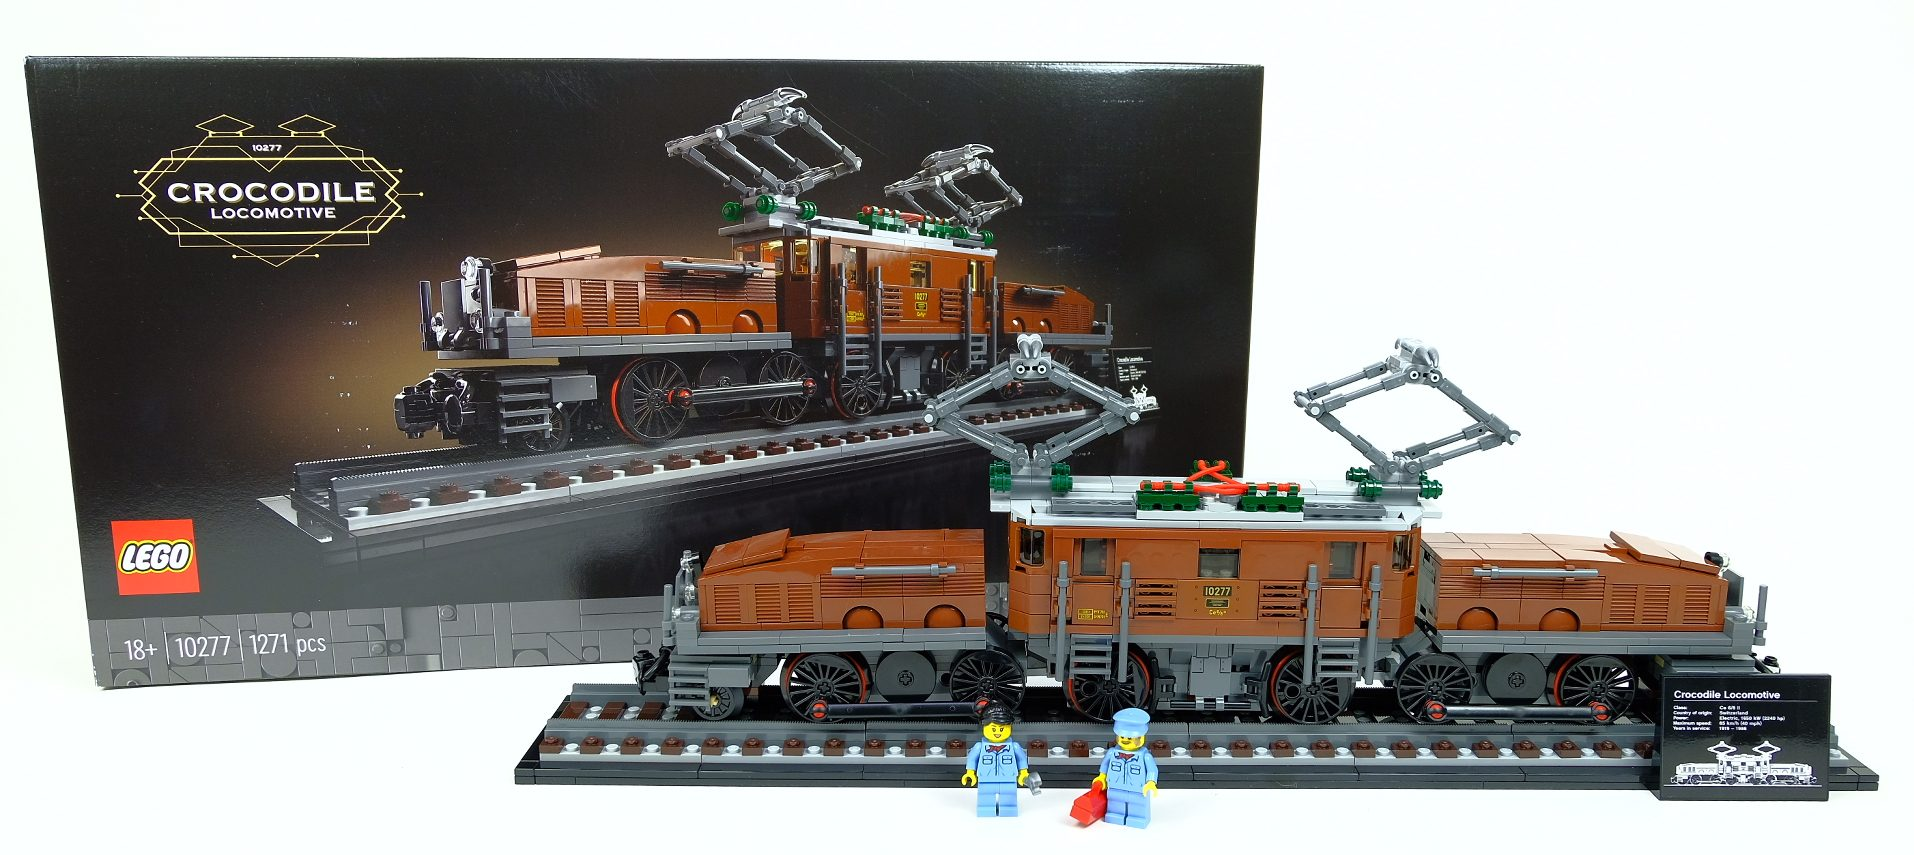 [Review] LEGO Crocodile Locomotive